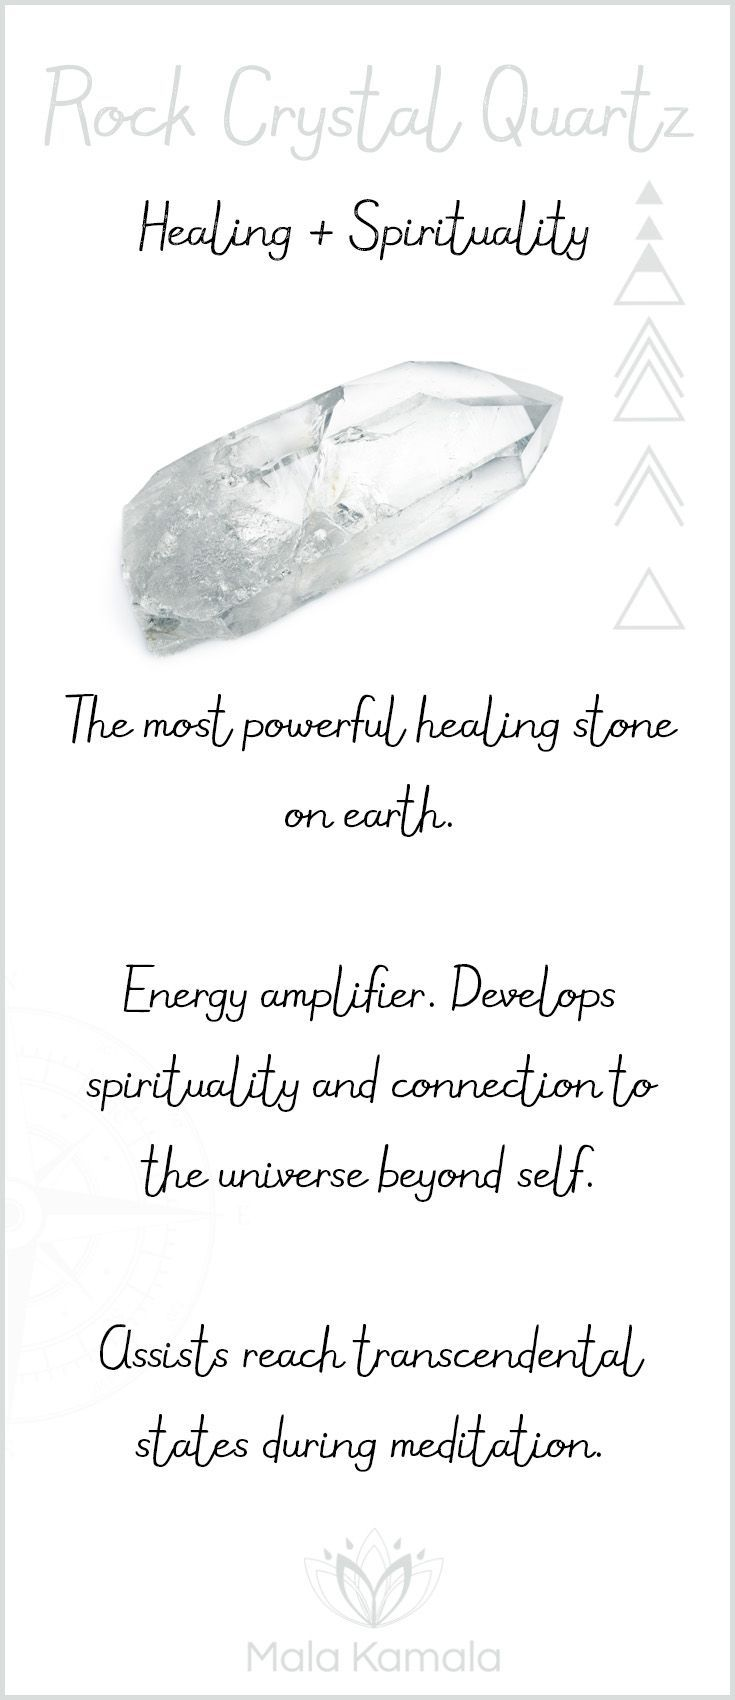 What is the meaning and crystal and chakra healing properties of rock crystal clear quartz? A stone for healing and spirituality.